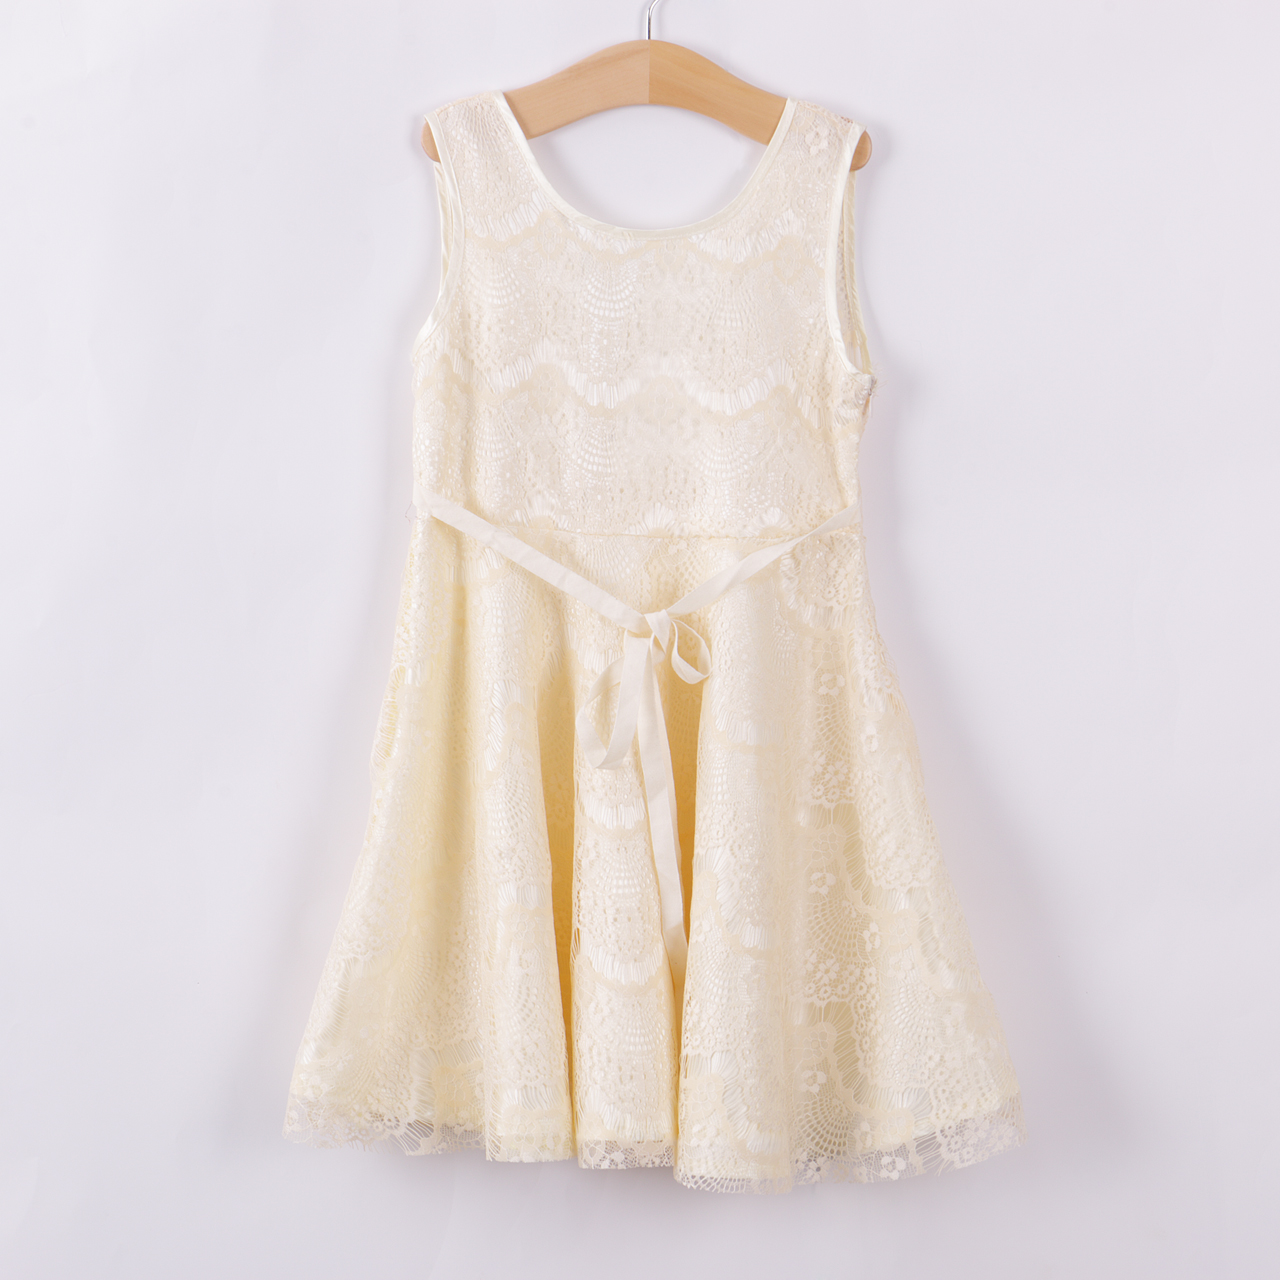 2018 Hot Kids Baby Girls Princess Party Dress Lace Sleeveless Gown Formal Dress 2-11Y